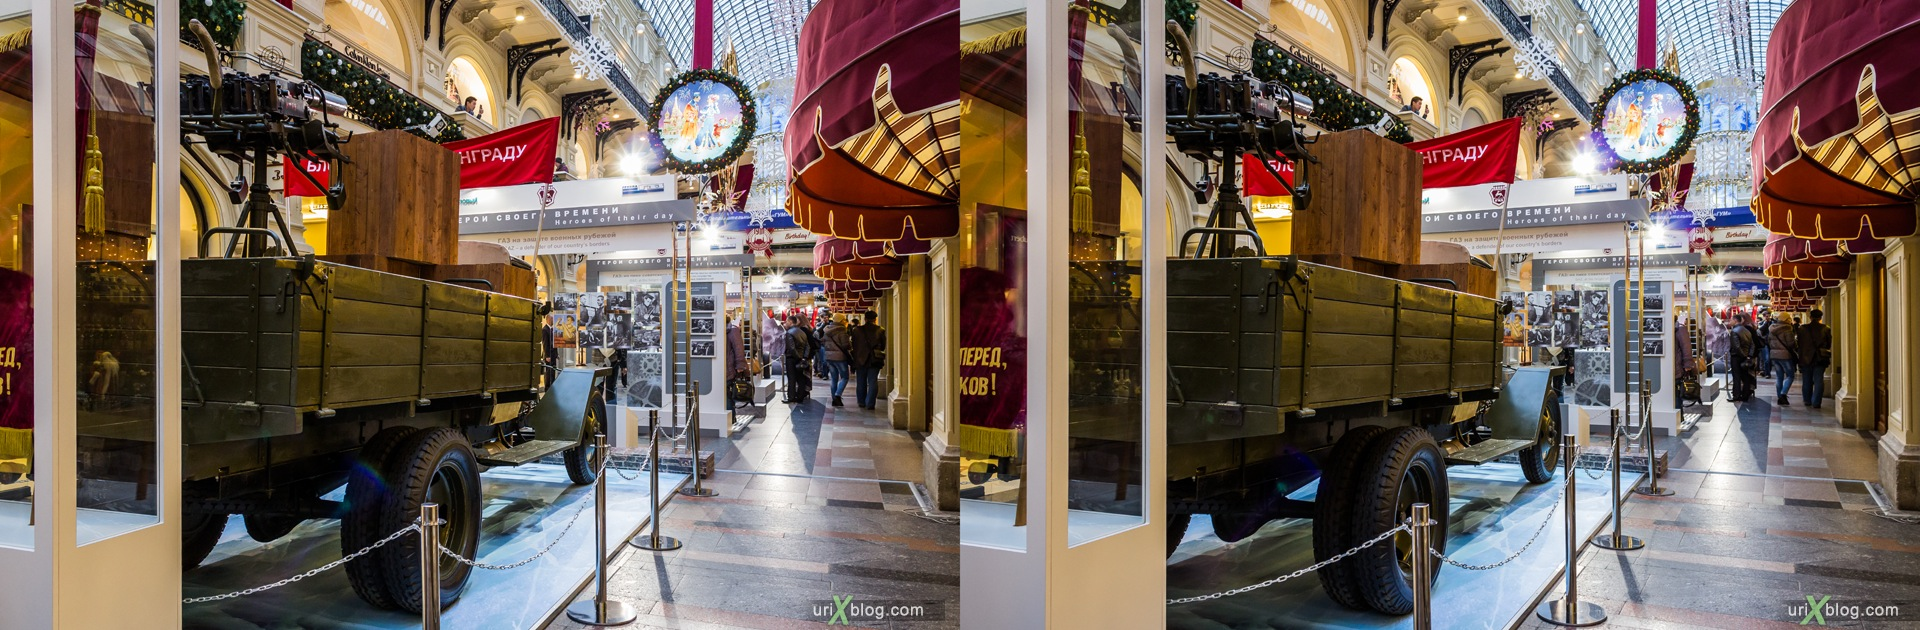 2013, Moscow, Russia, GAZ-AA, GUM, old, automobile, vehicle, exhibition, shop, mall, 3D, stereo pair, cross-eyed, crossview, cross view stereo pair, stereoscopic